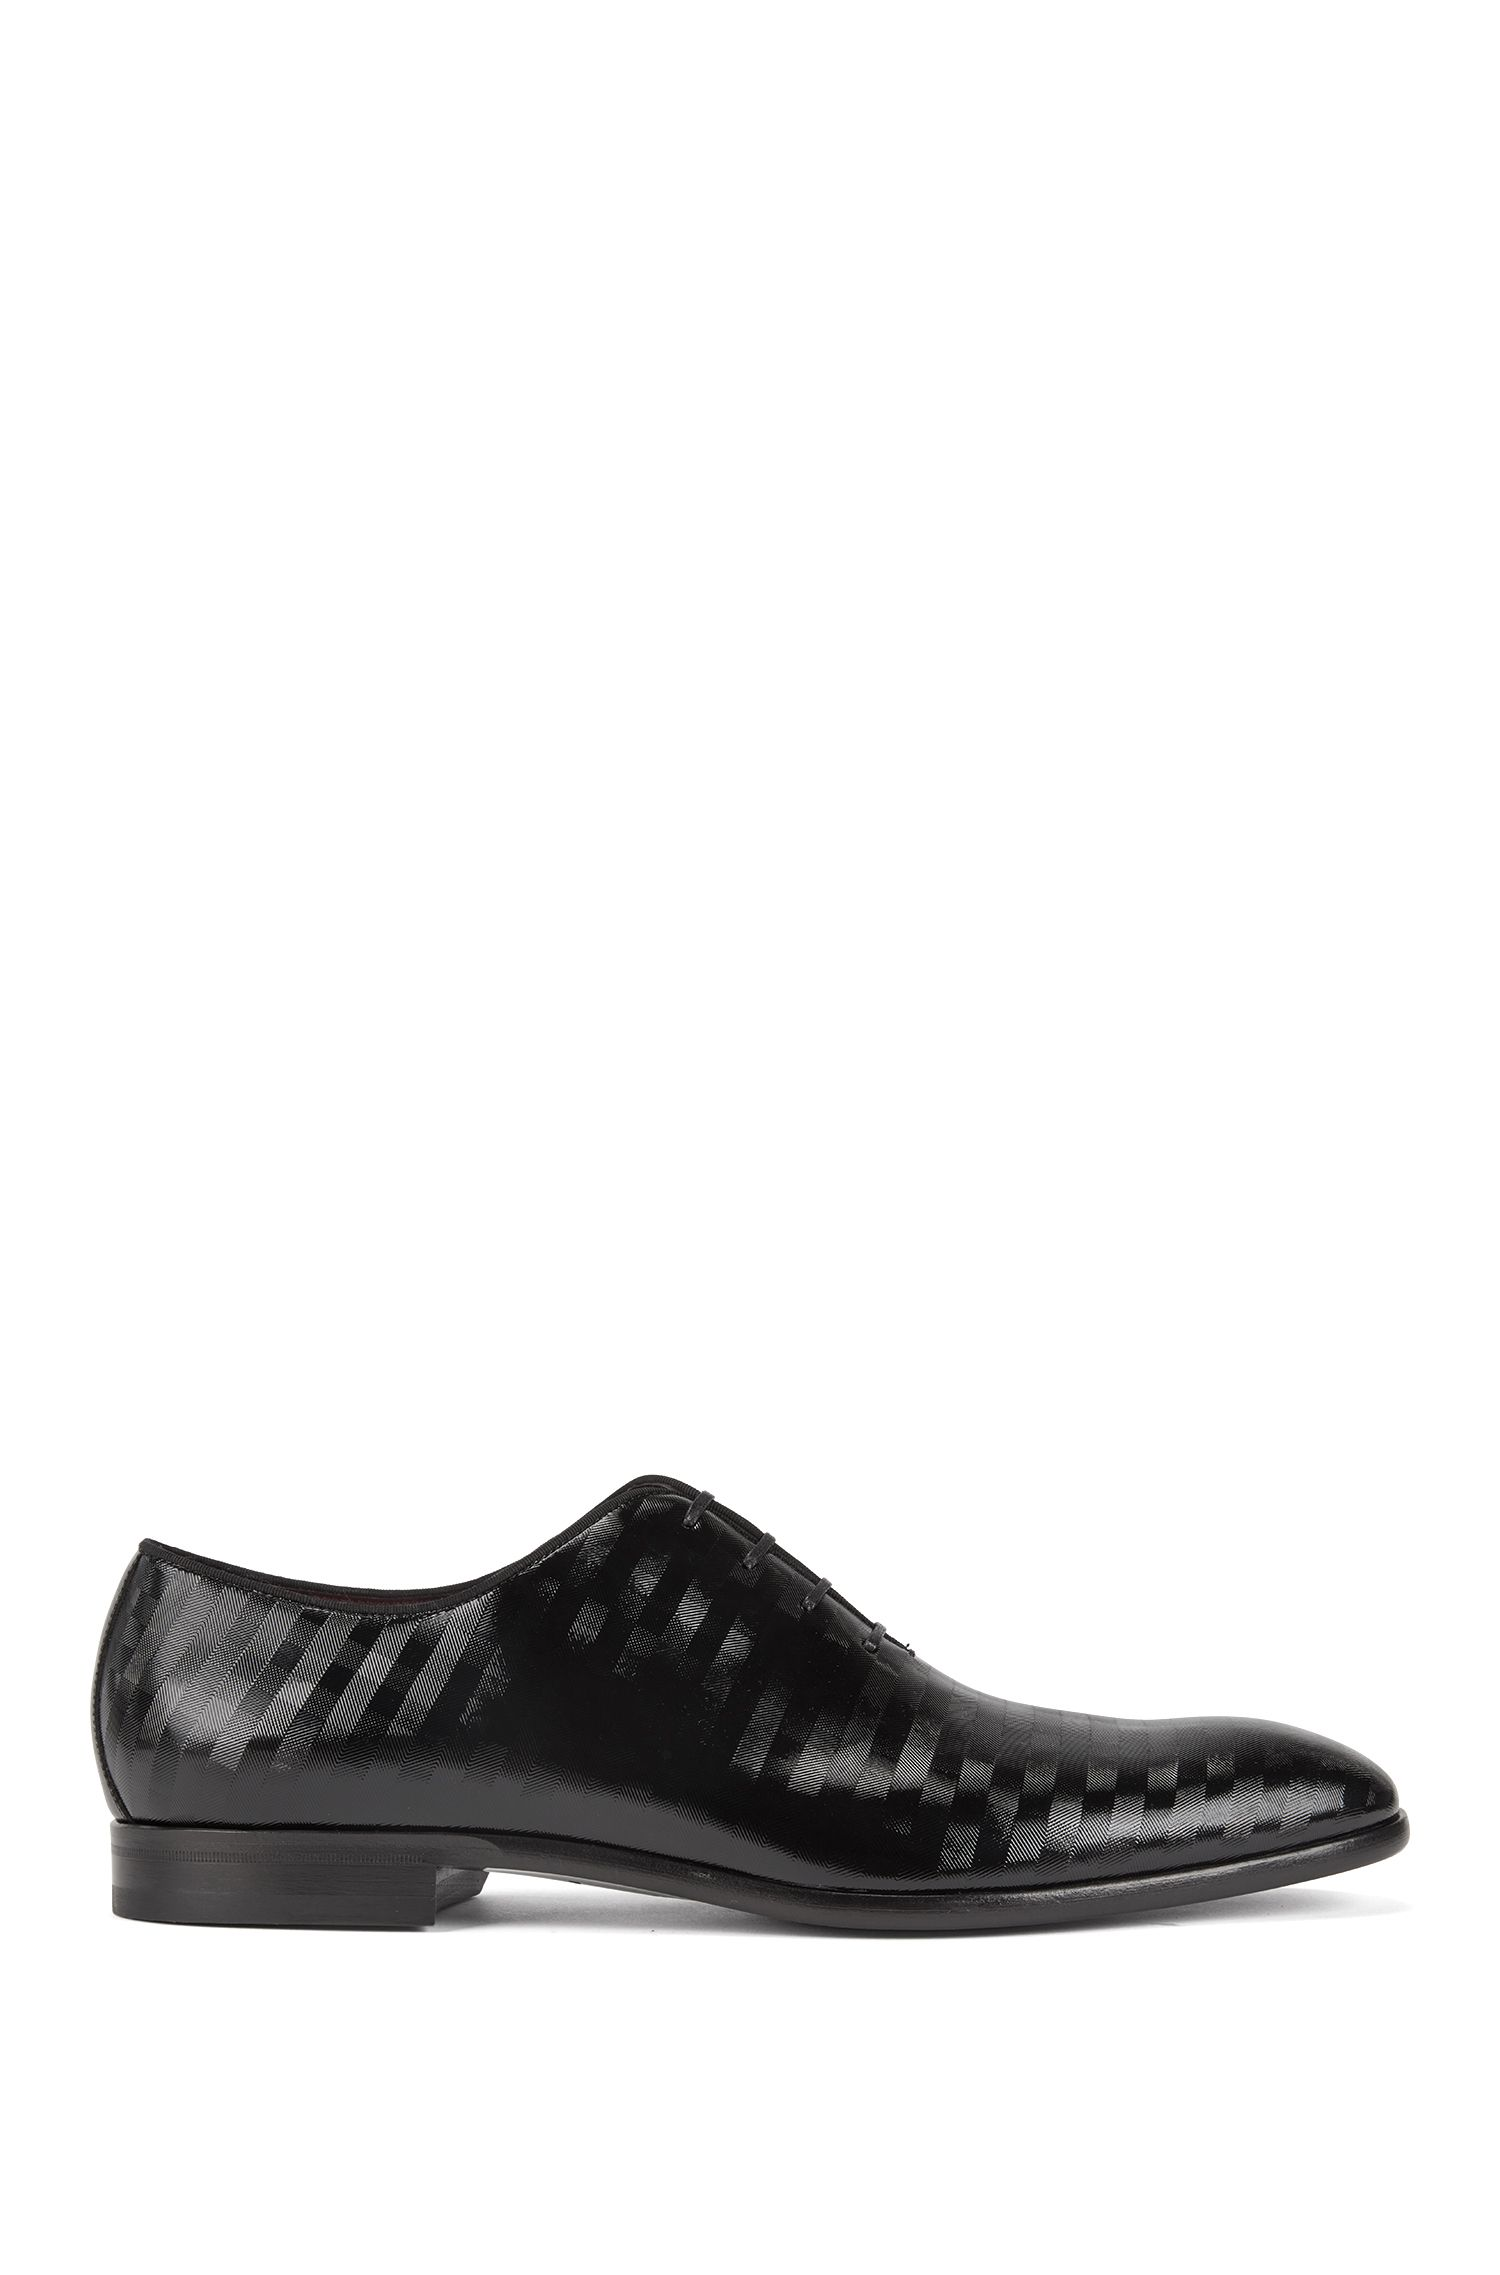 Italian-made Oxford shoes in patent calf leather with stripes detail, Black